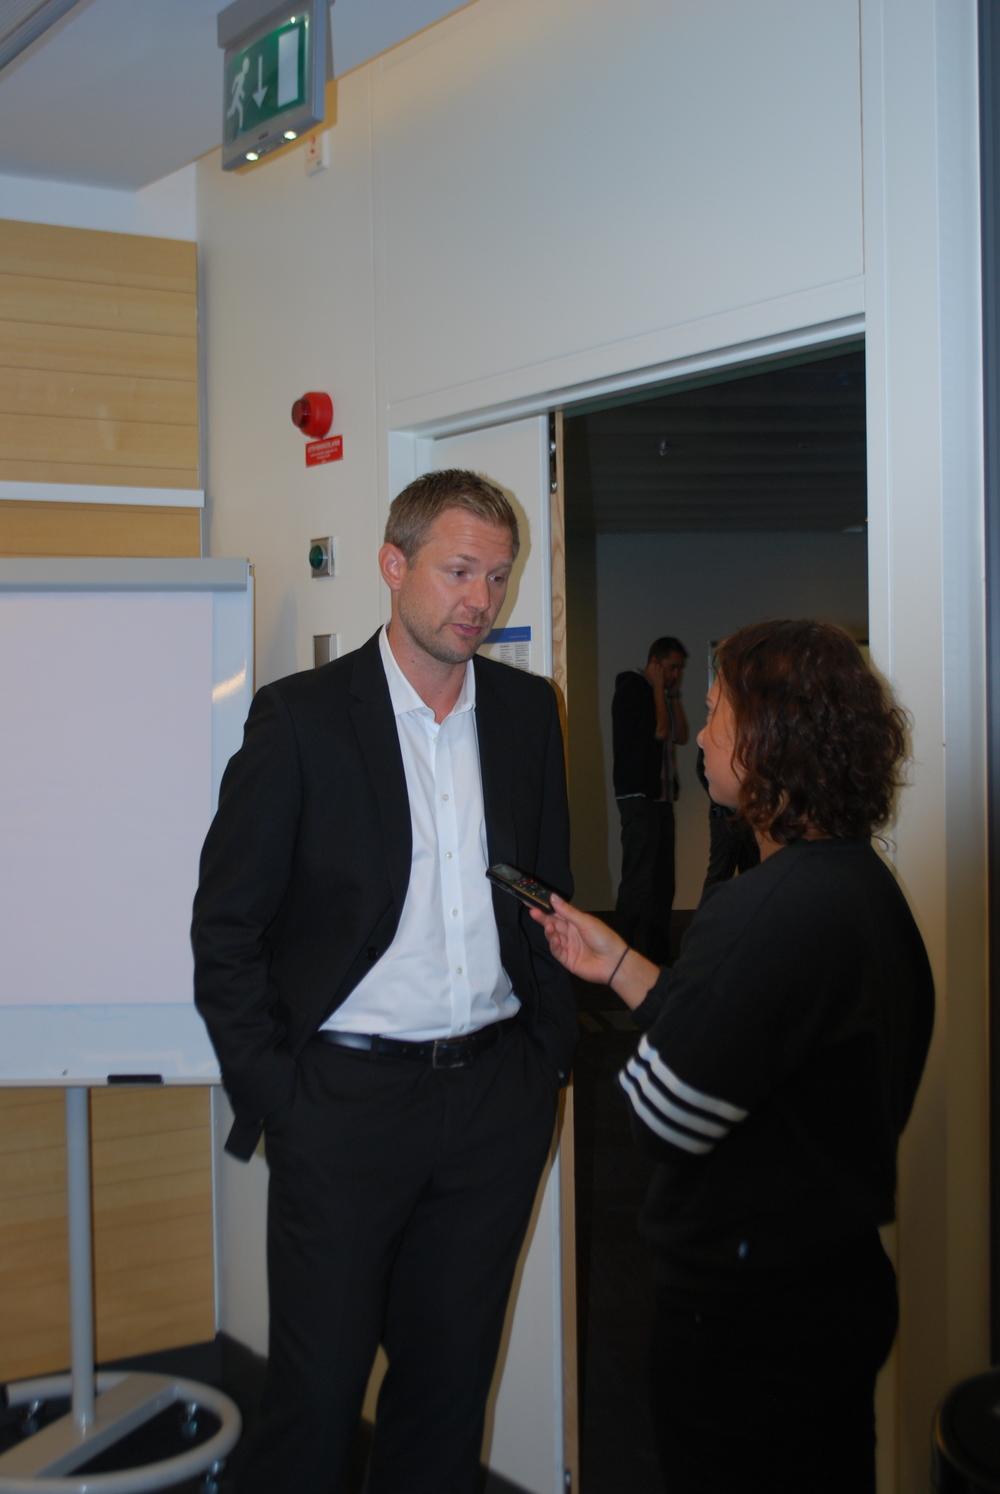 Magnus Pehrsson speaking with local press at the Radisson Waterfront Hotel